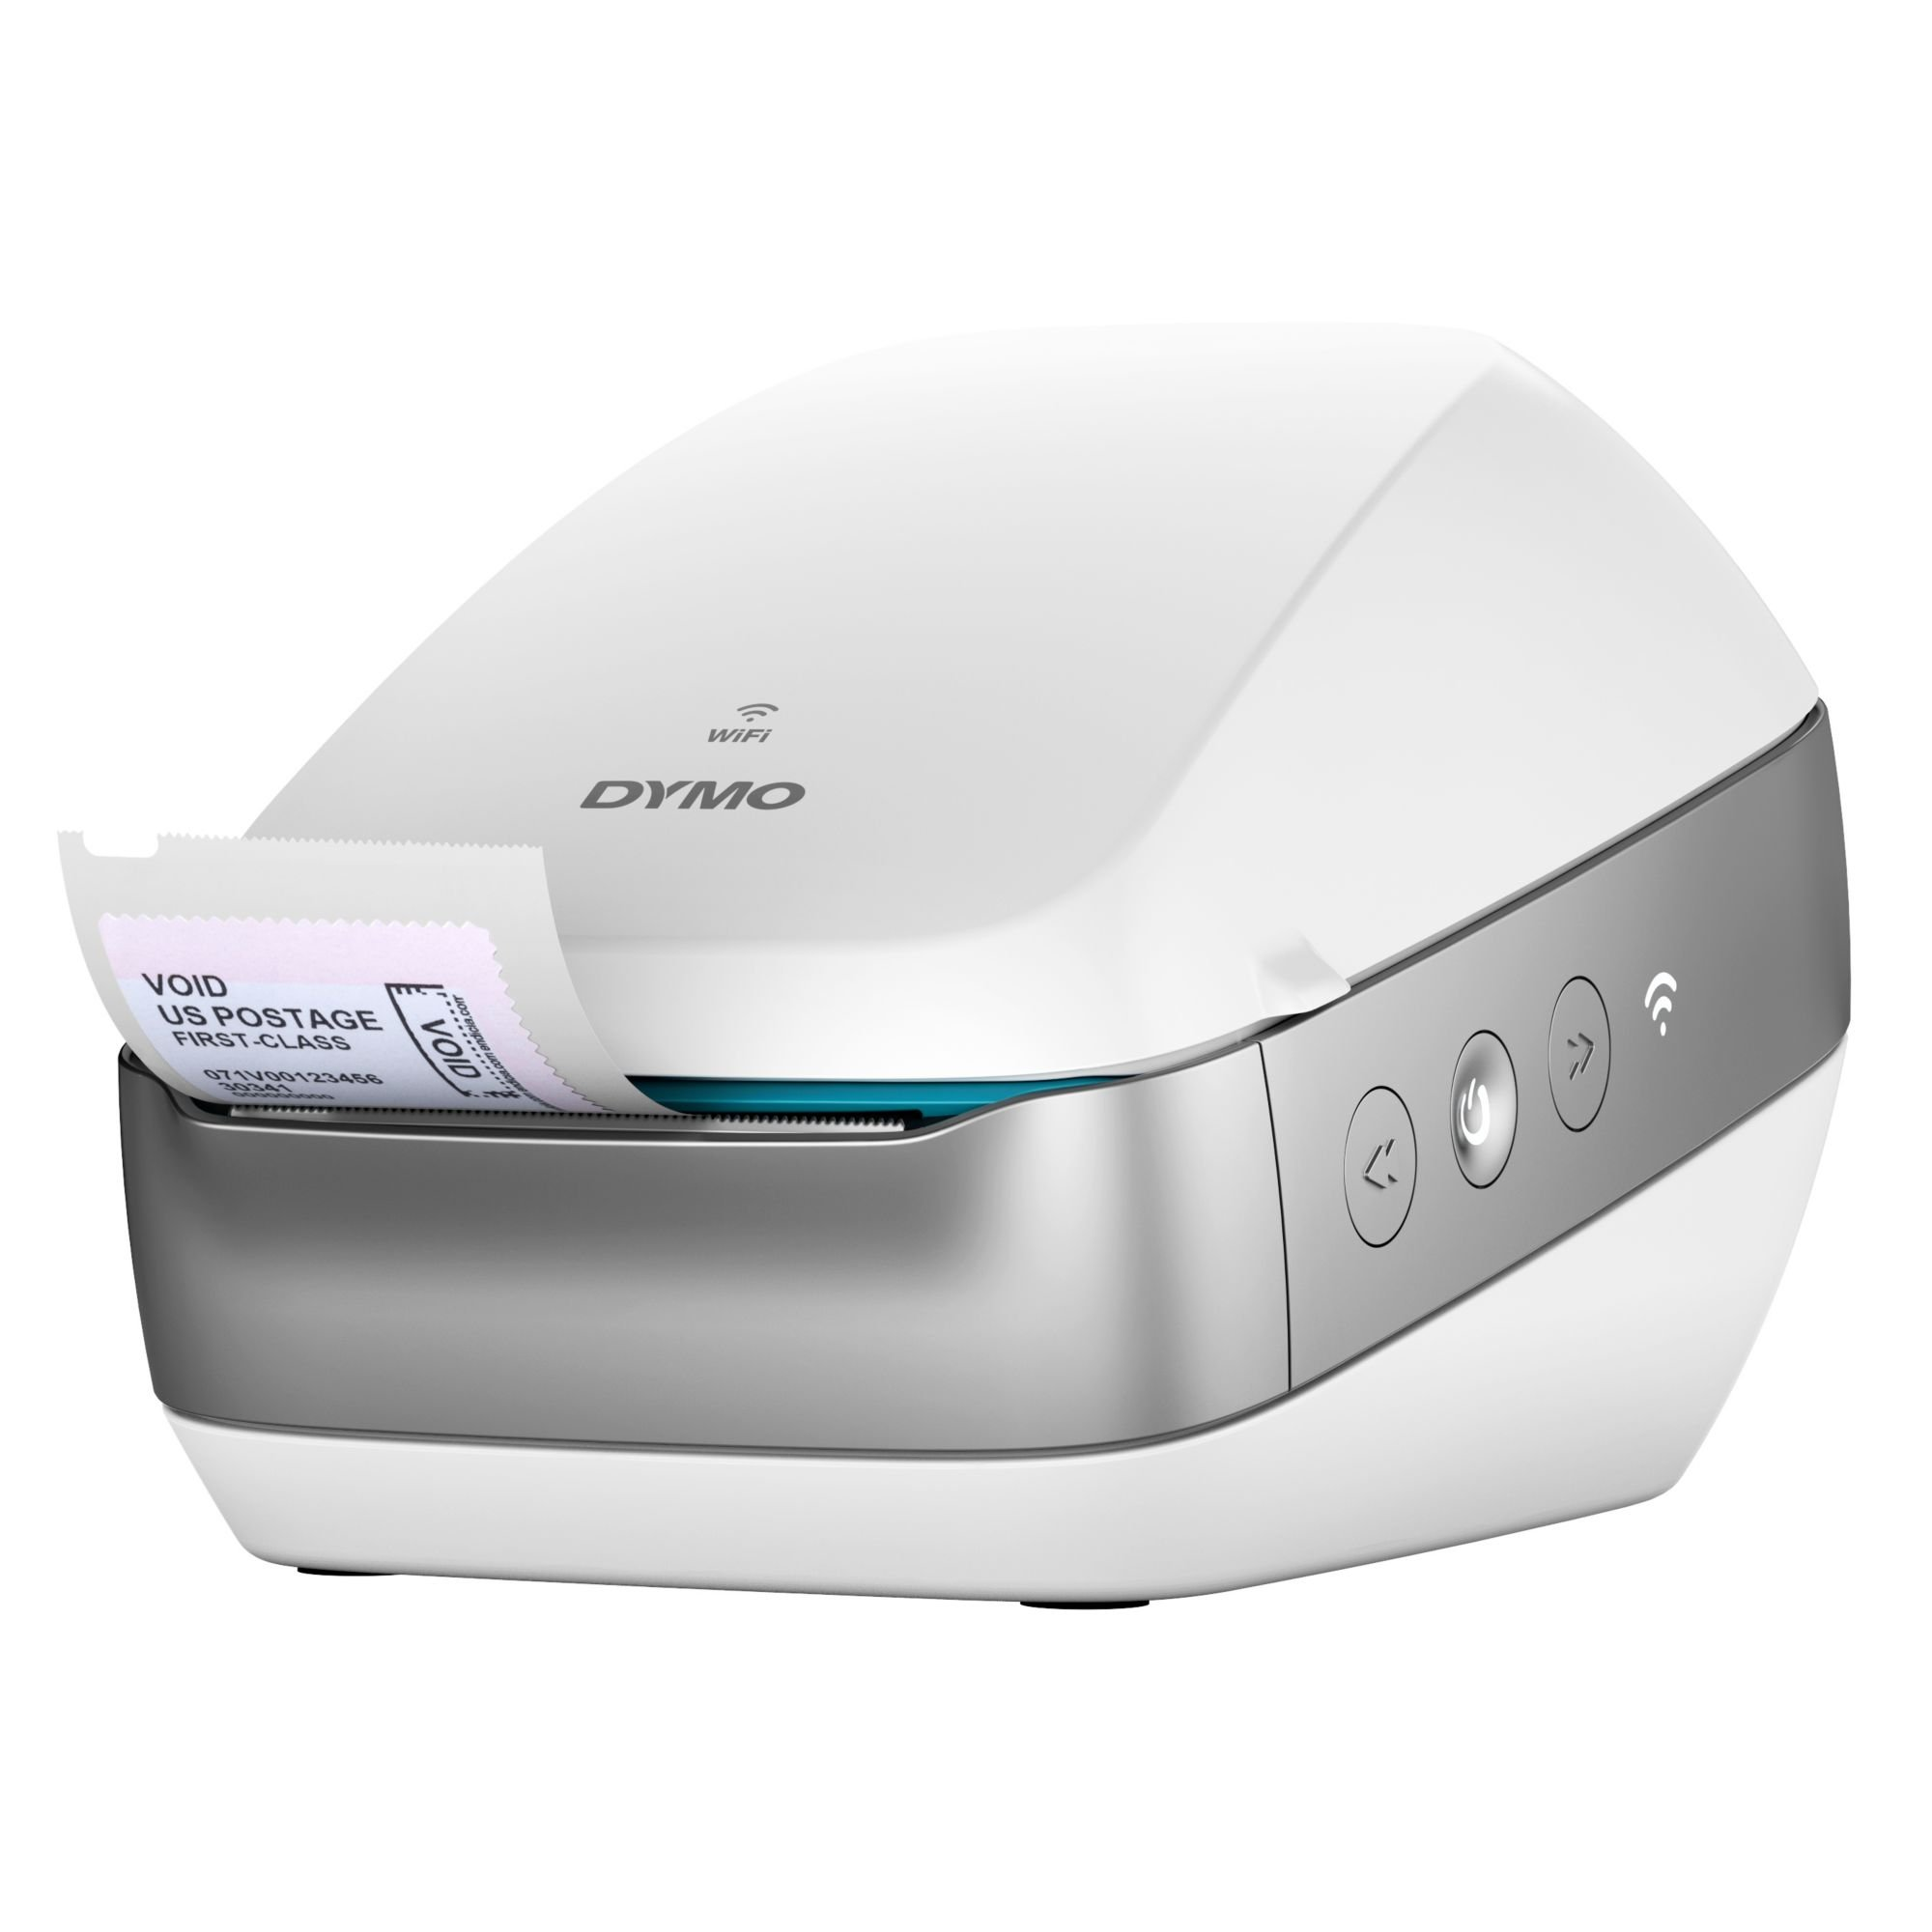 DYMO LabelWriter Wireless Printer, White (1981698)